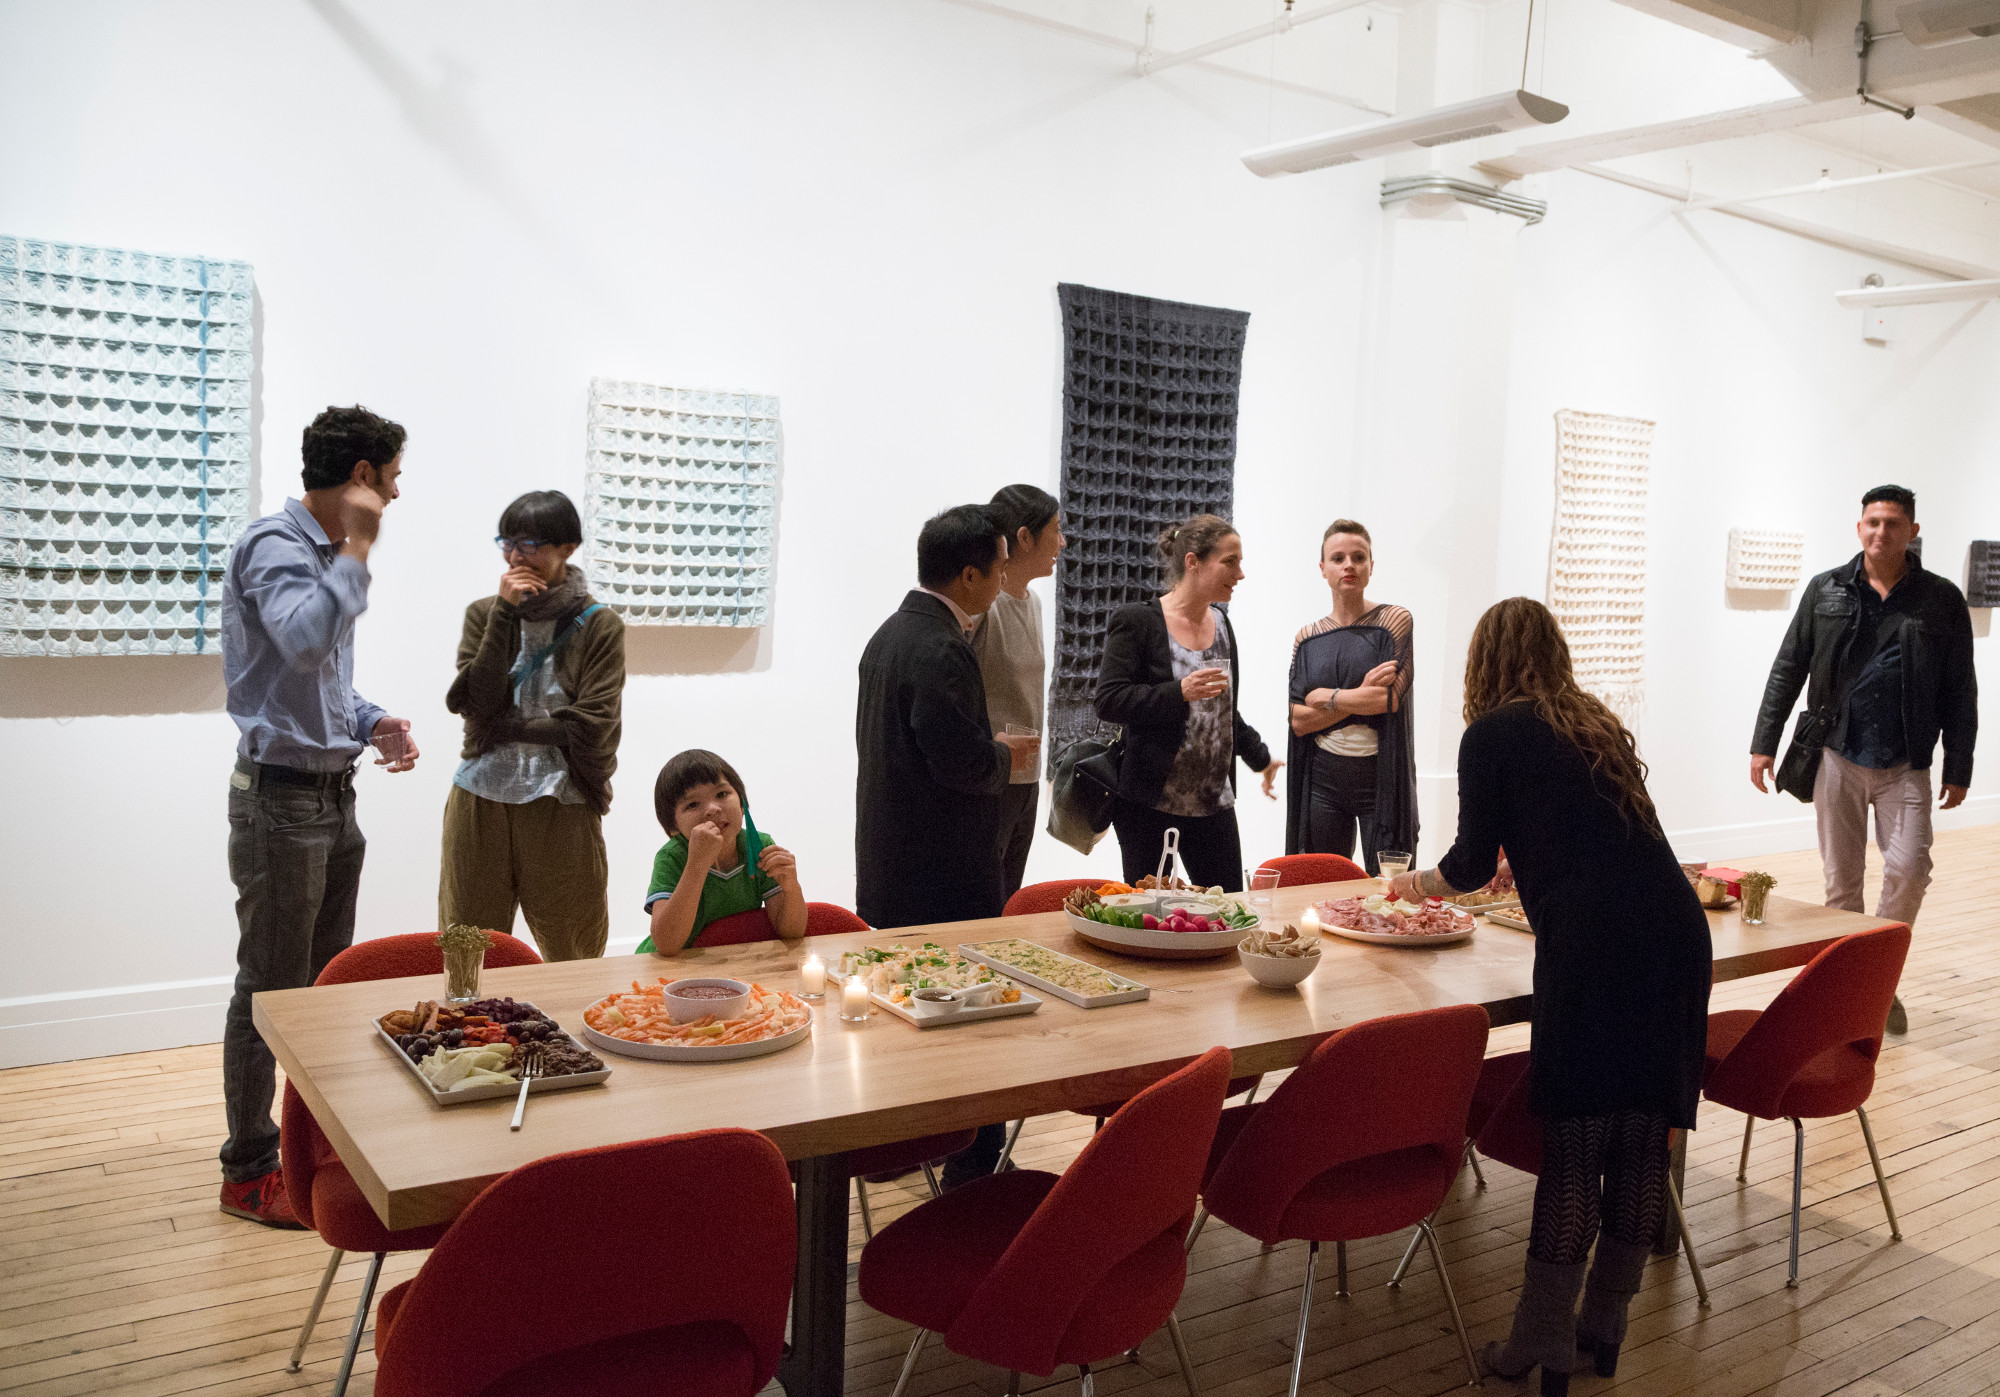 gallery night at Delson or Sherman Architects' Brooklyn offices